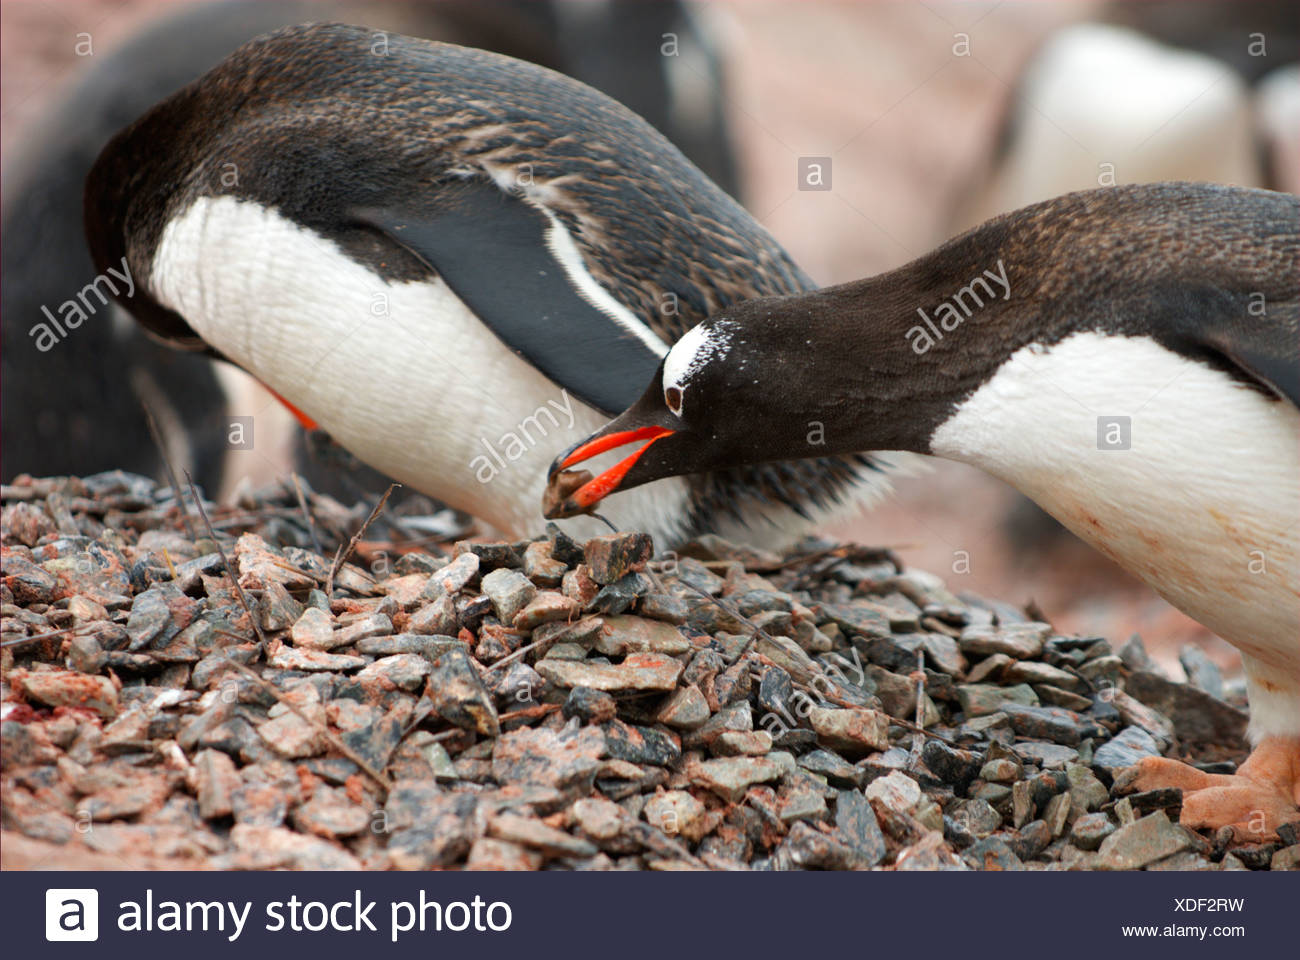 Gentoo penguin lifting a small stone with his bill - Stock Image